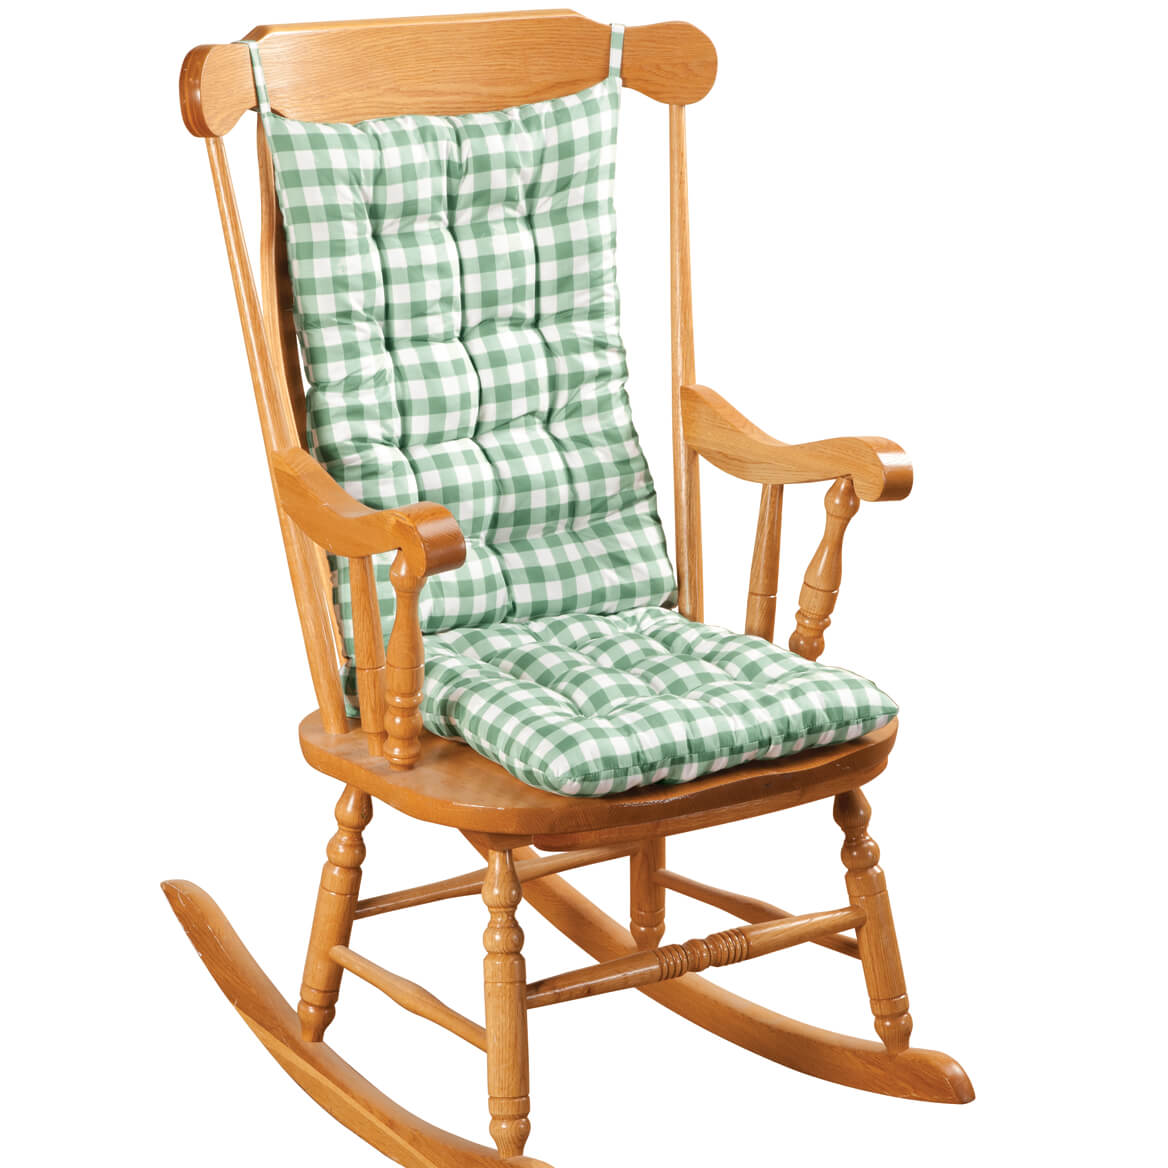 Gingham Rocking Chair Cushion Set By OakRidgeTM   Walmart.com